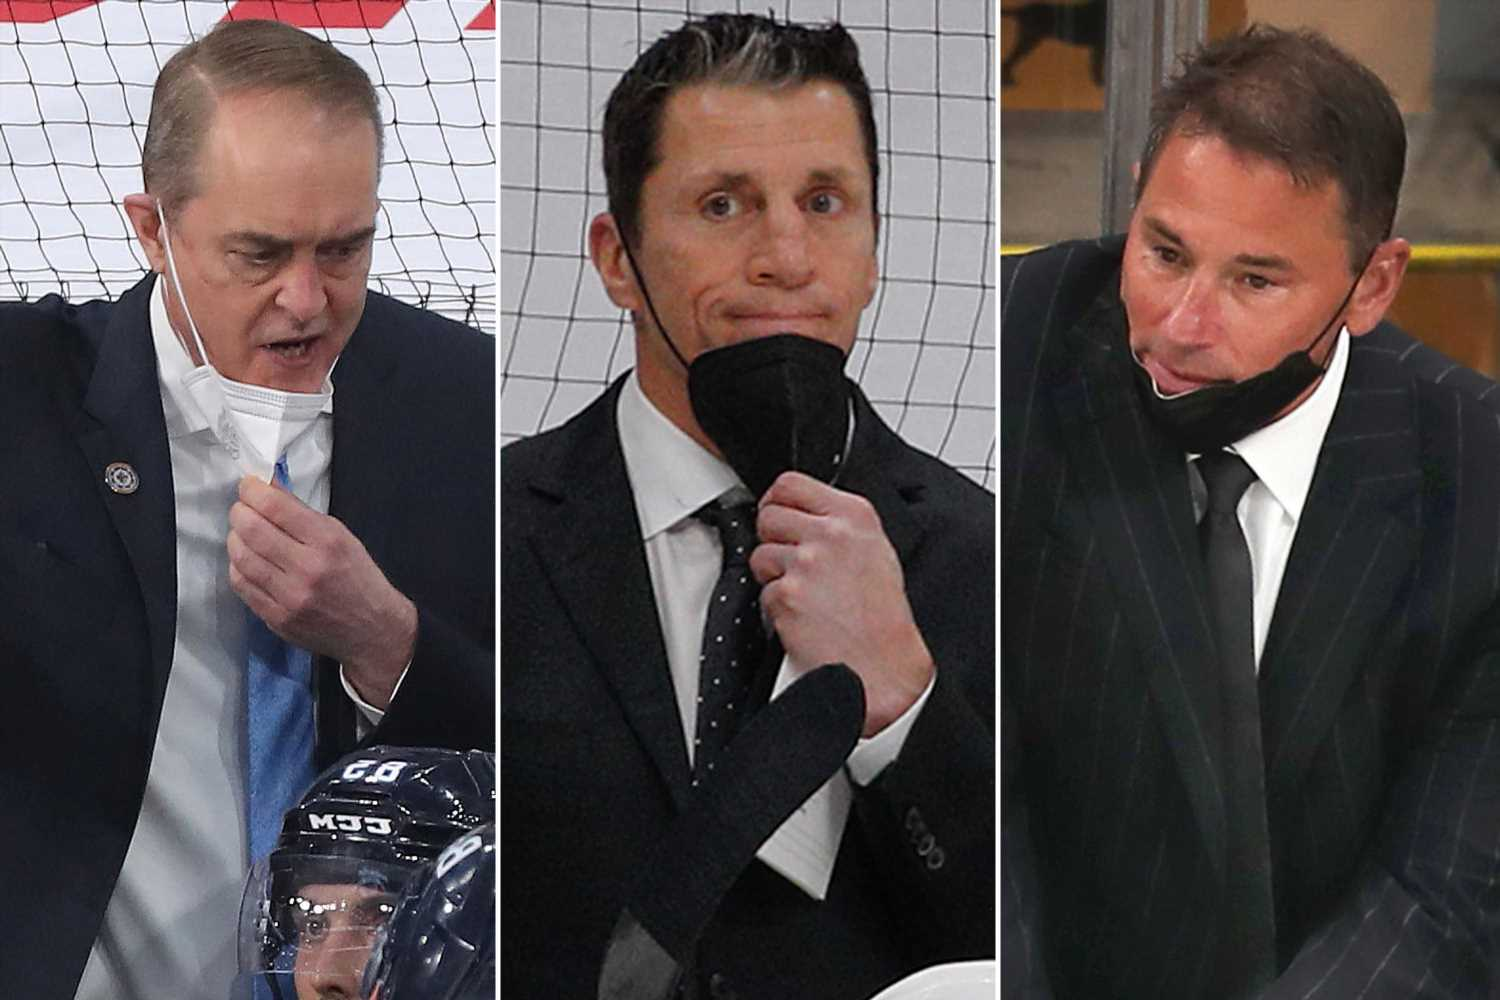 These playoff coaches could impact Gerard Gallant's Rangers status